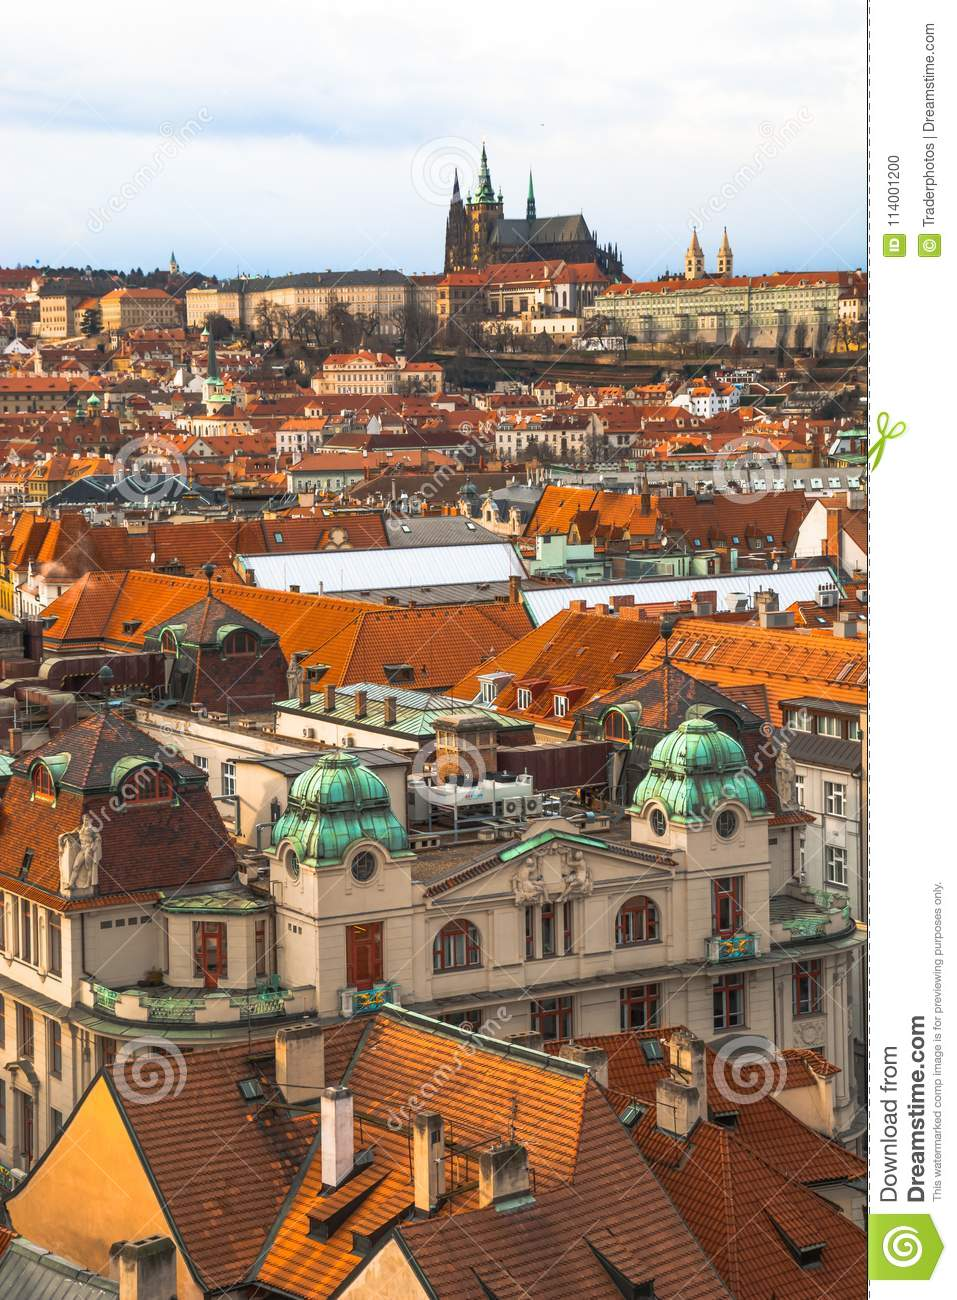 Panorama of the old part of the city of Prague.